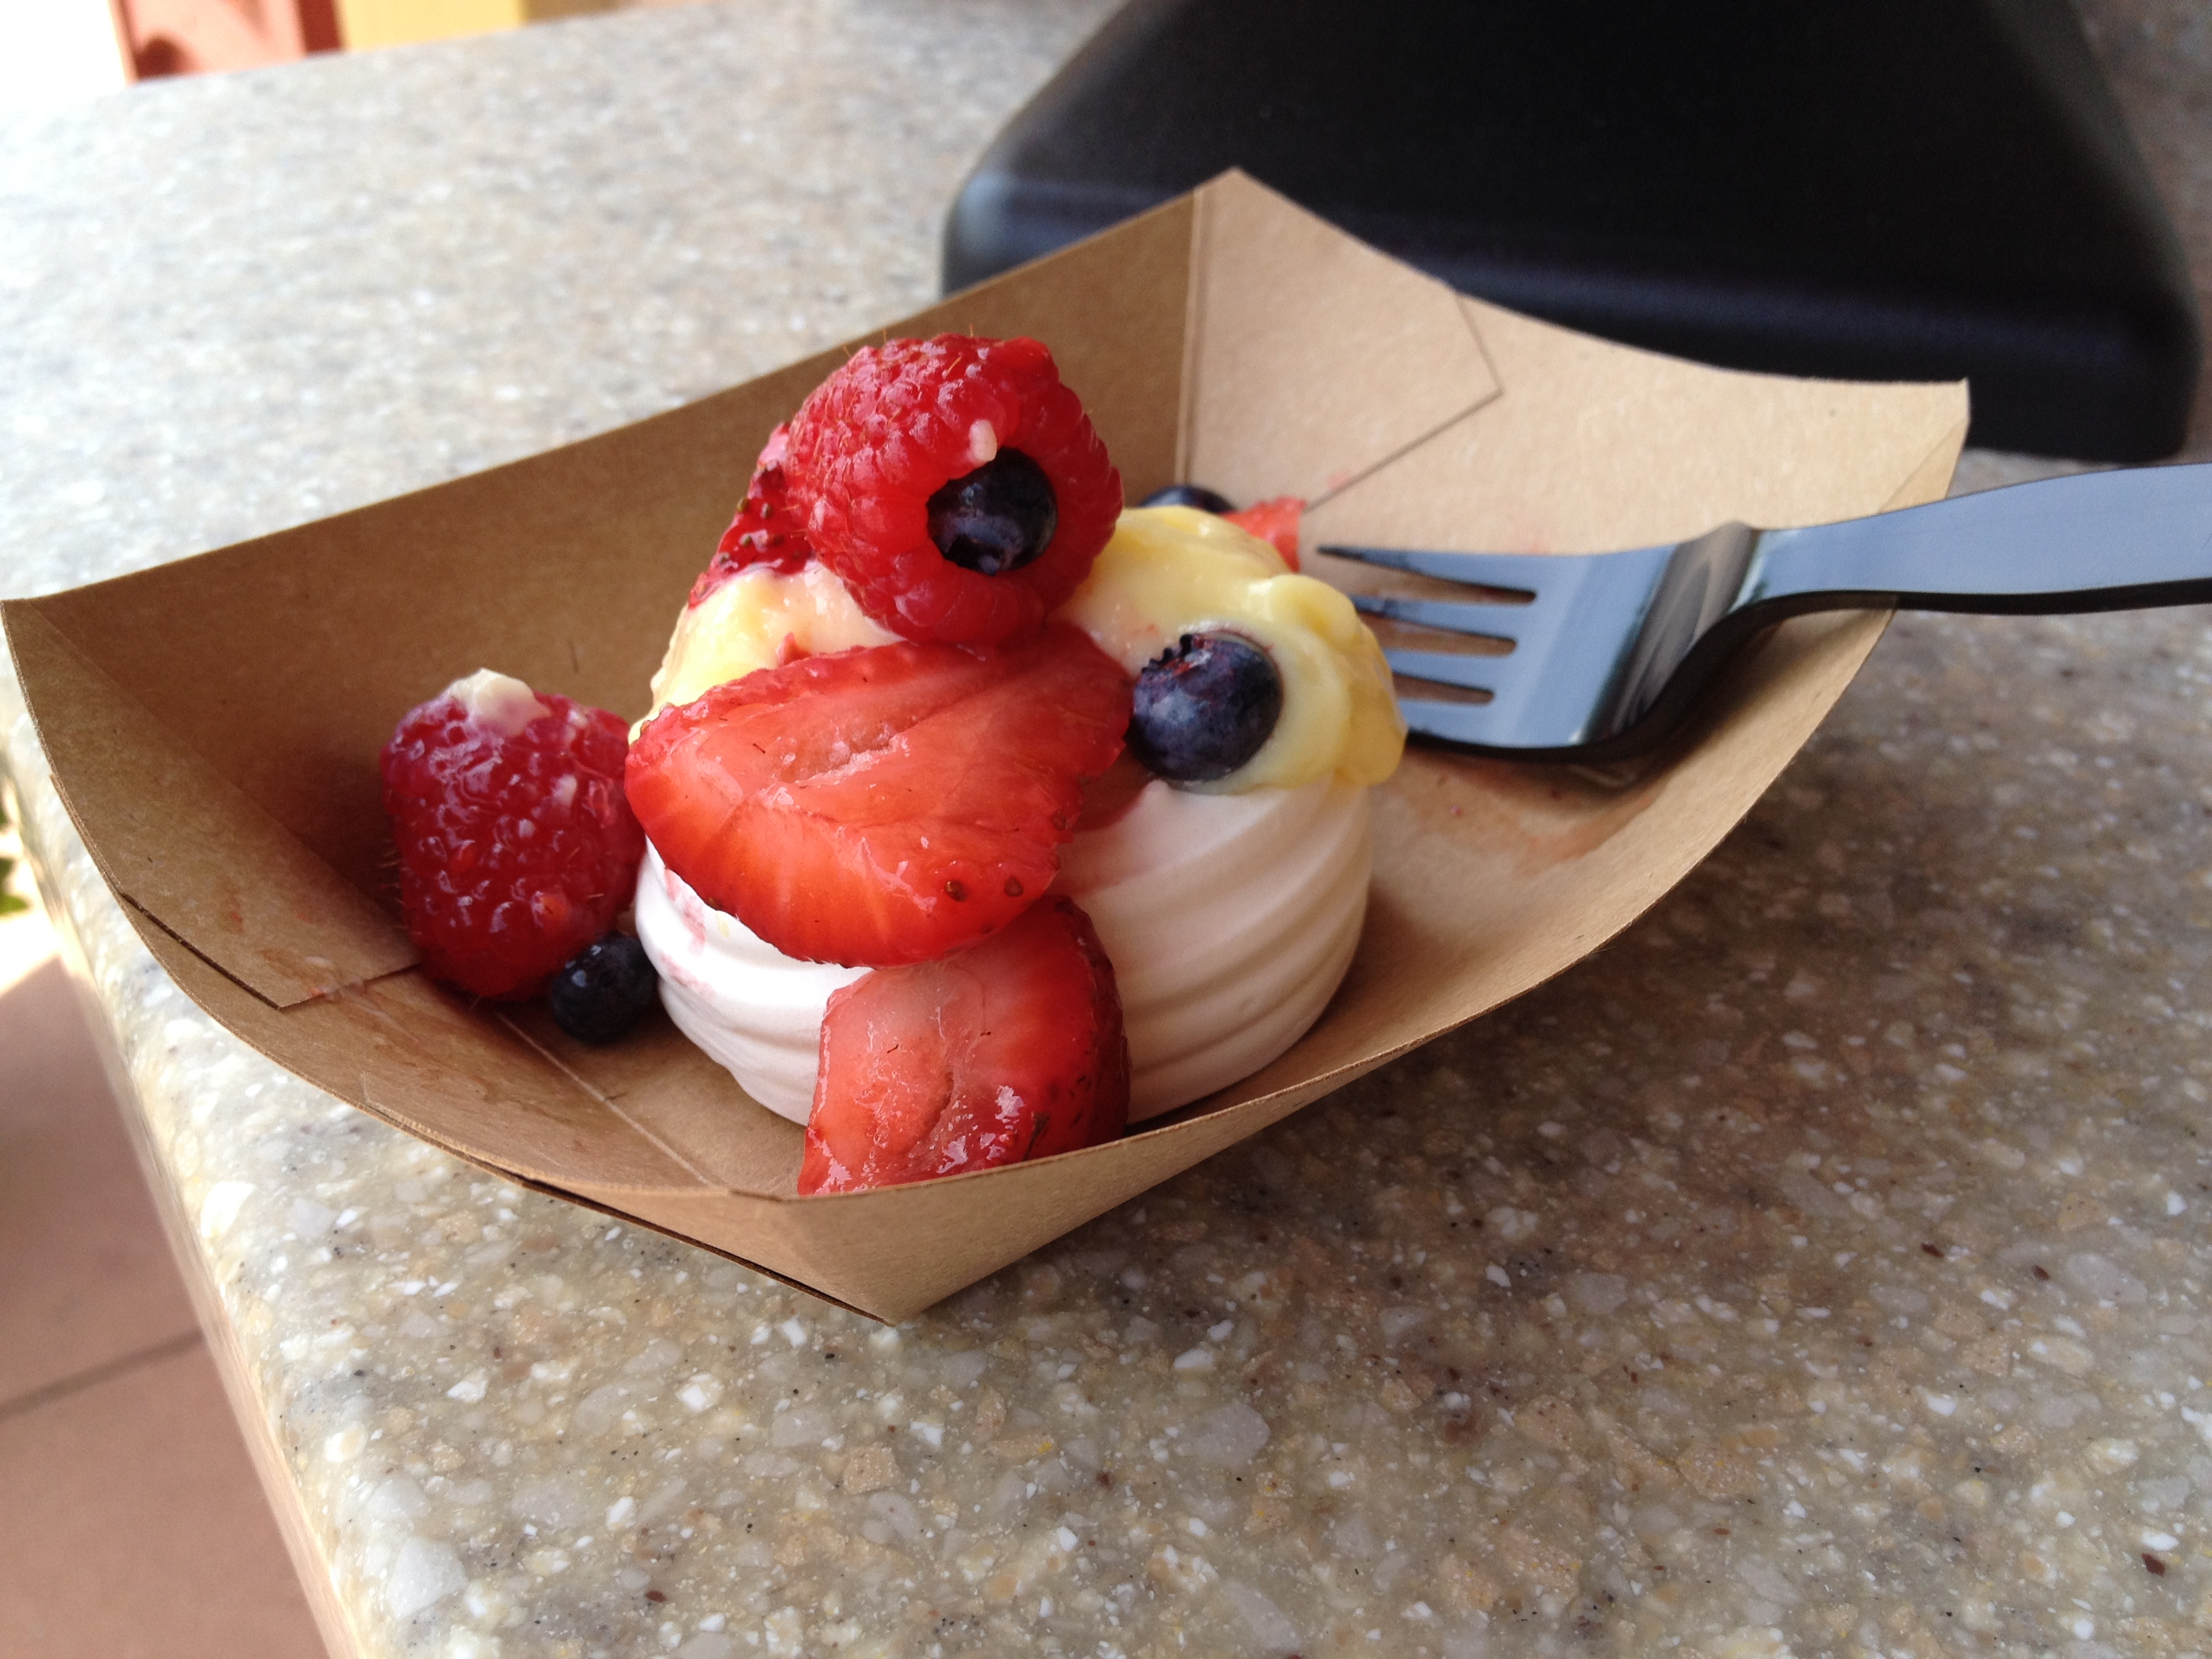 Pavlova Dessert - Available at the Australia Kiosk